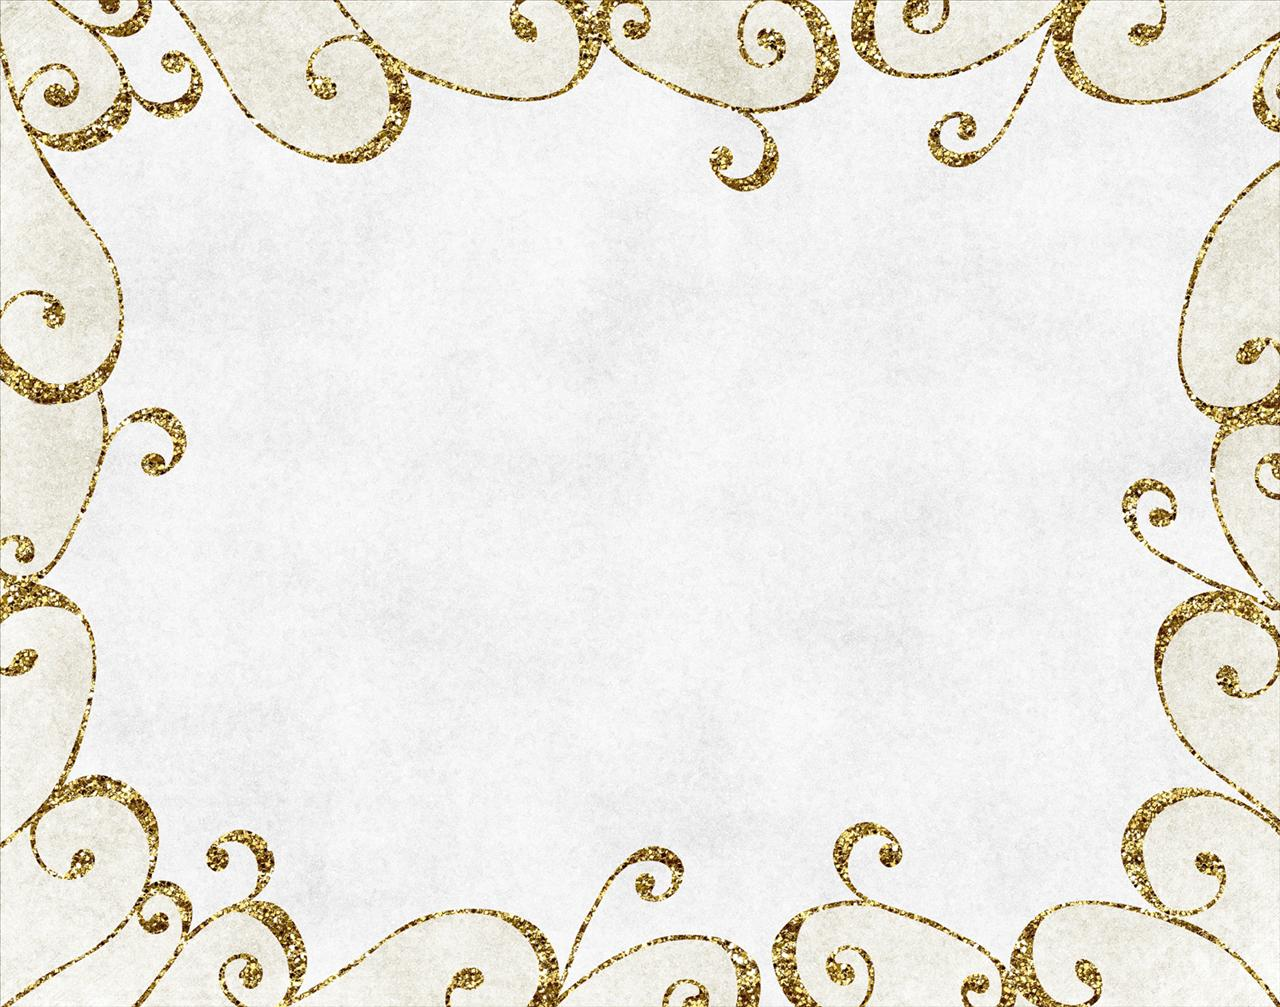 14 religious elegant page border designs images fancy gold page fancy gold page border designs voltagebd Image collections